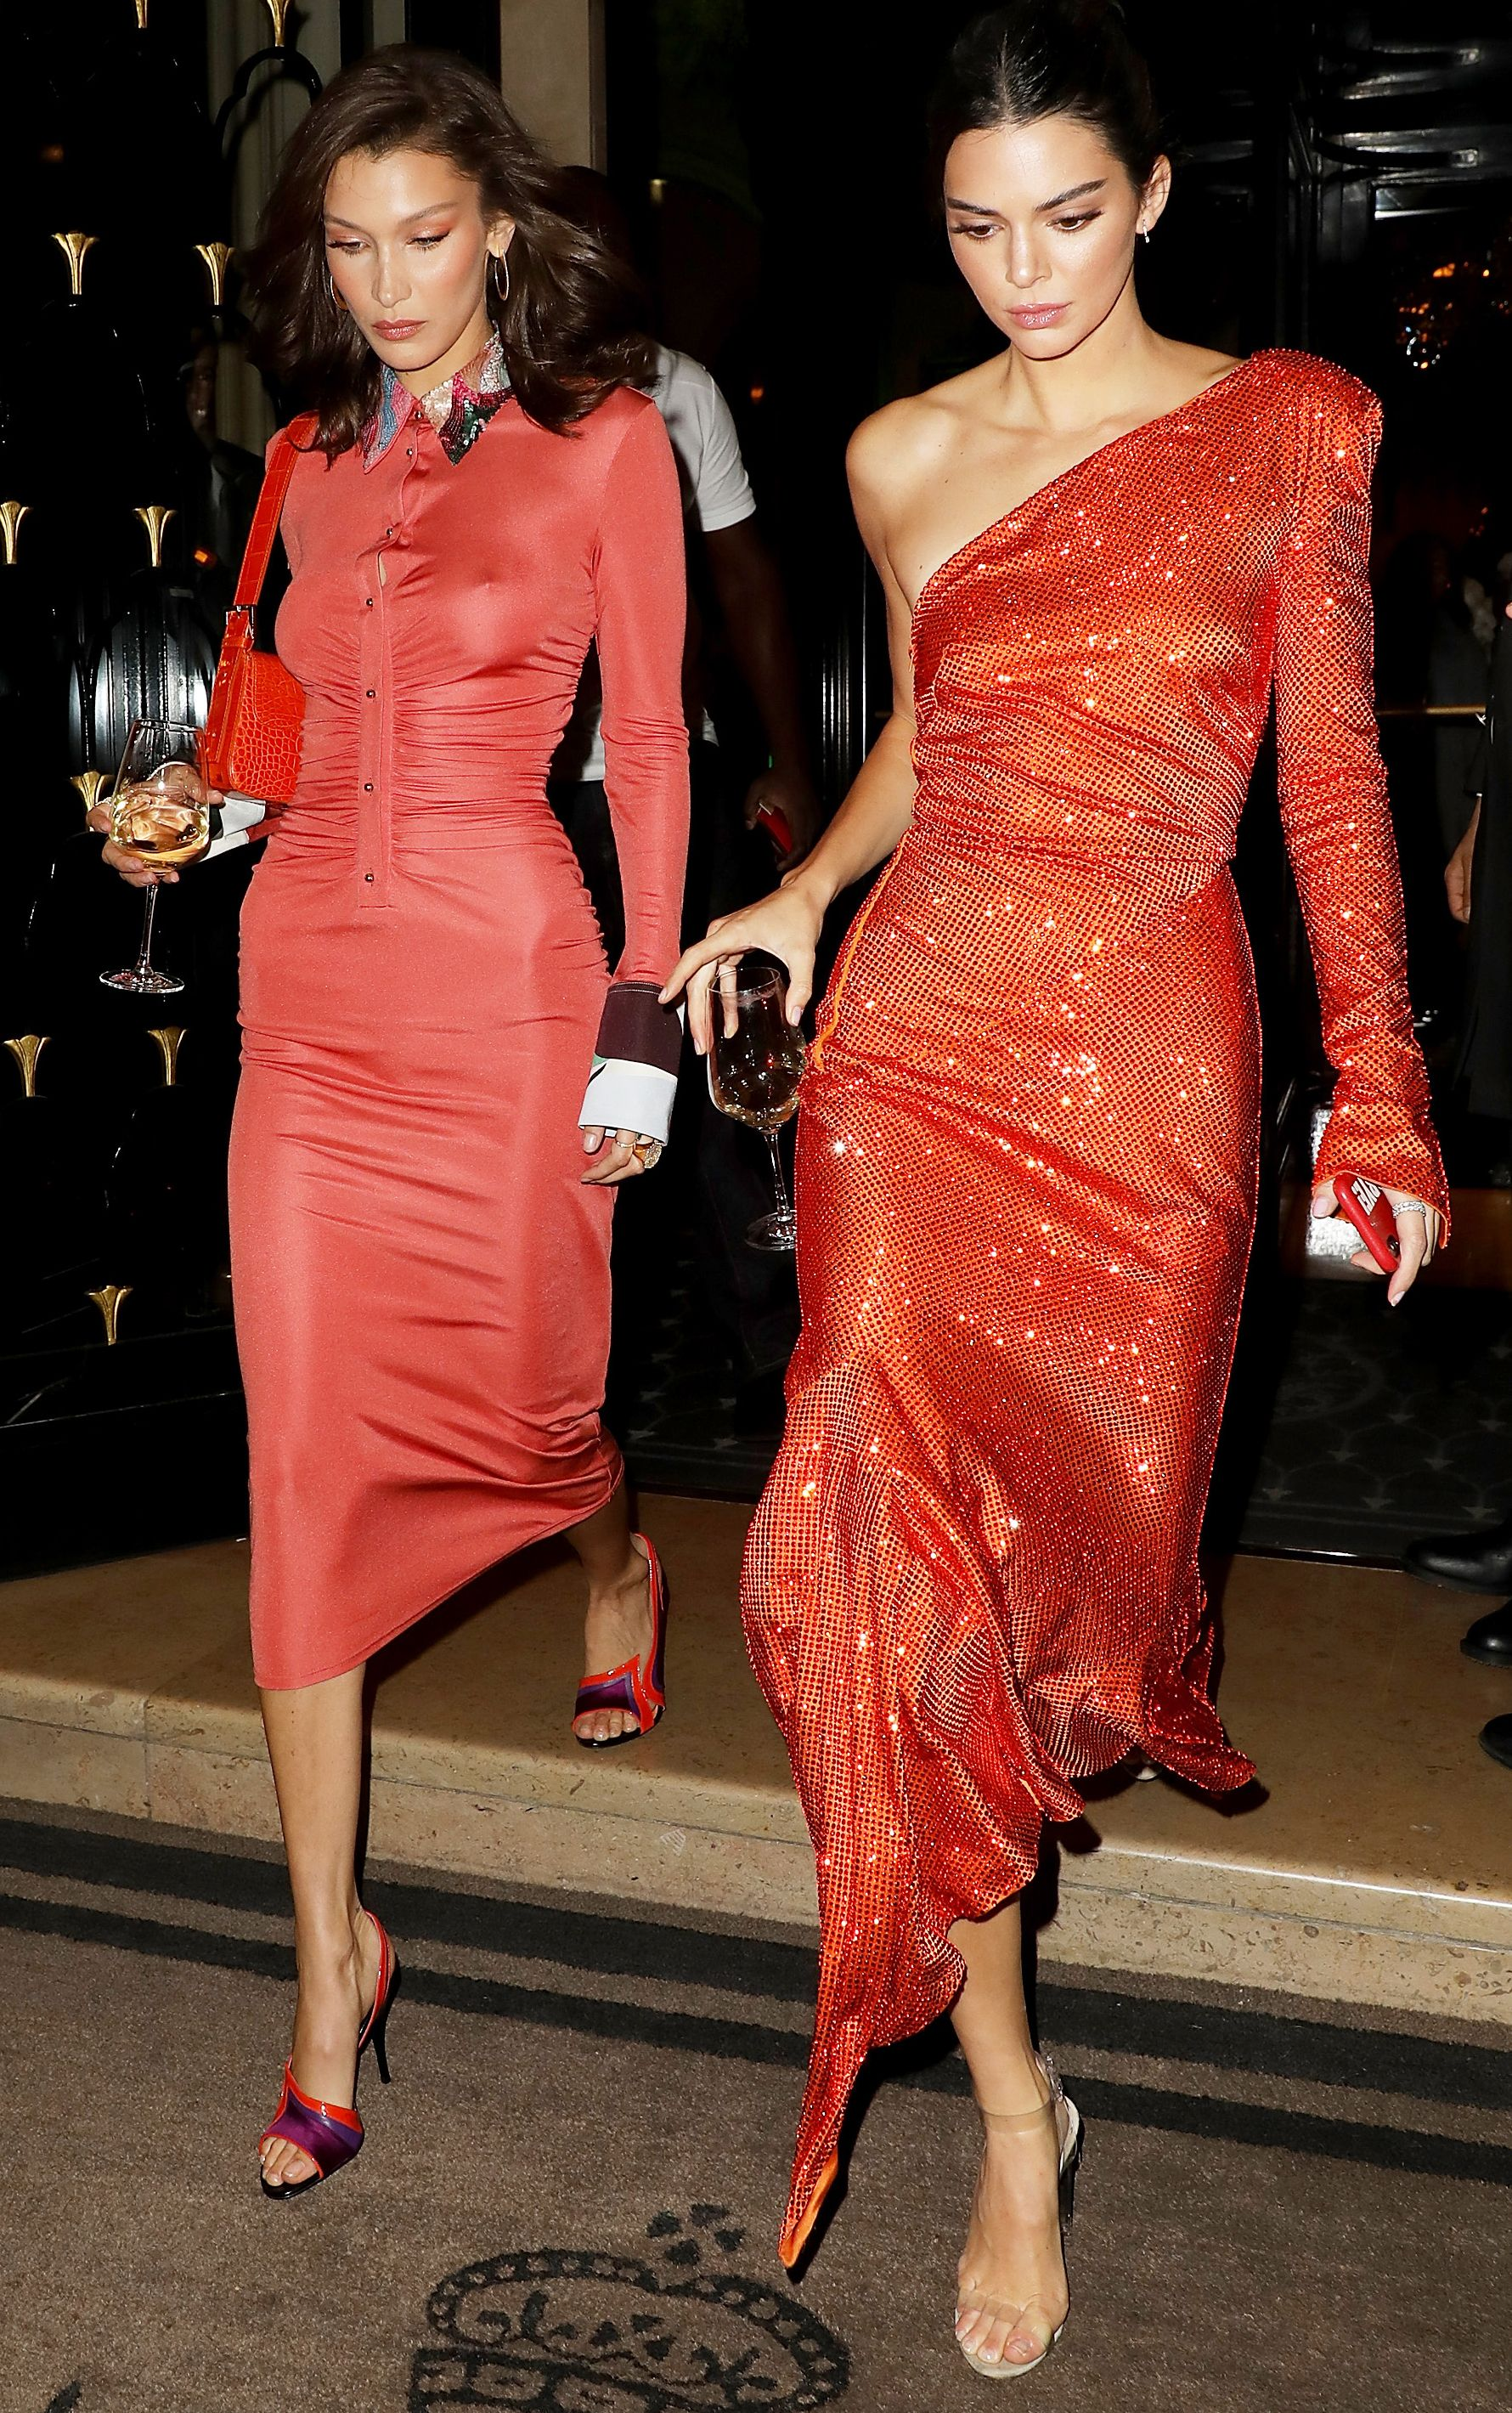 Discussion on this topic: Kendall Jenner and Bella Hadid are the , kendall-jenner-and-bella-hadid-are-the/